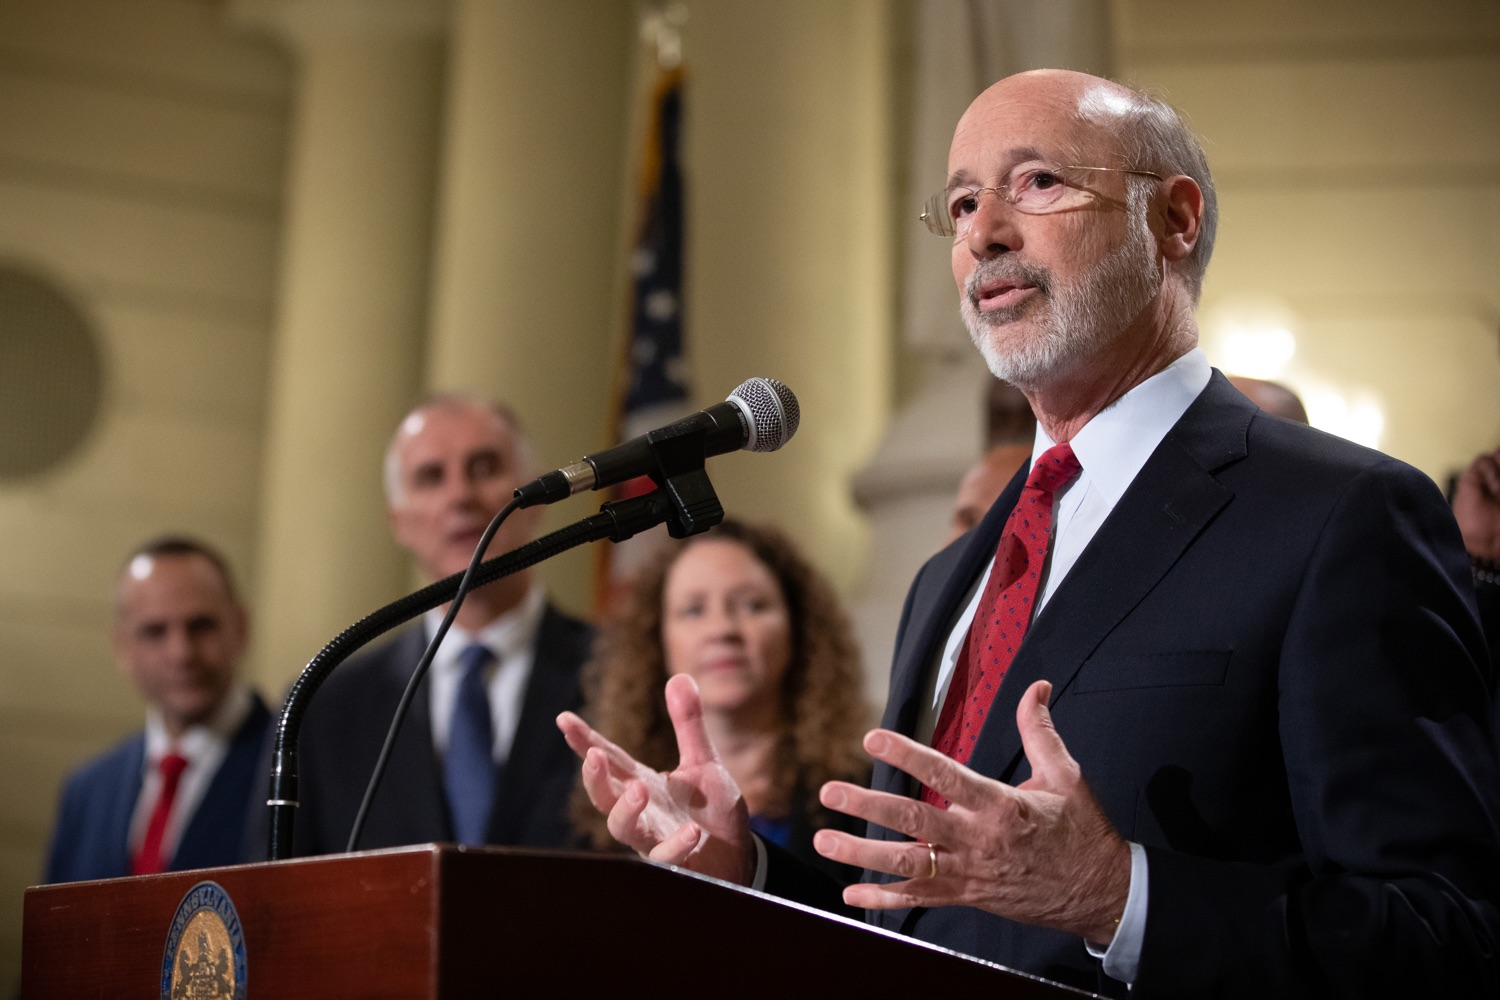 """<a href=""""https://filesource.wostreaming.net/commonwealthofpa/photo/17601_gov_right_on_crime_dz_001.jpg"""" target=""""_blank"""">⇣Download Photo<br></a>Governor Tom Wolf speaking at the event. Governor Tom Wolf was joined by Deputy Secretary of Corrections Christian Stephens and national criminal justice reform advocates today in the Capitol Rotunda to push for commonsense probation reforms that address probation sentences and probation lengths.  Harrisburg, PA  November 18, 2019"""